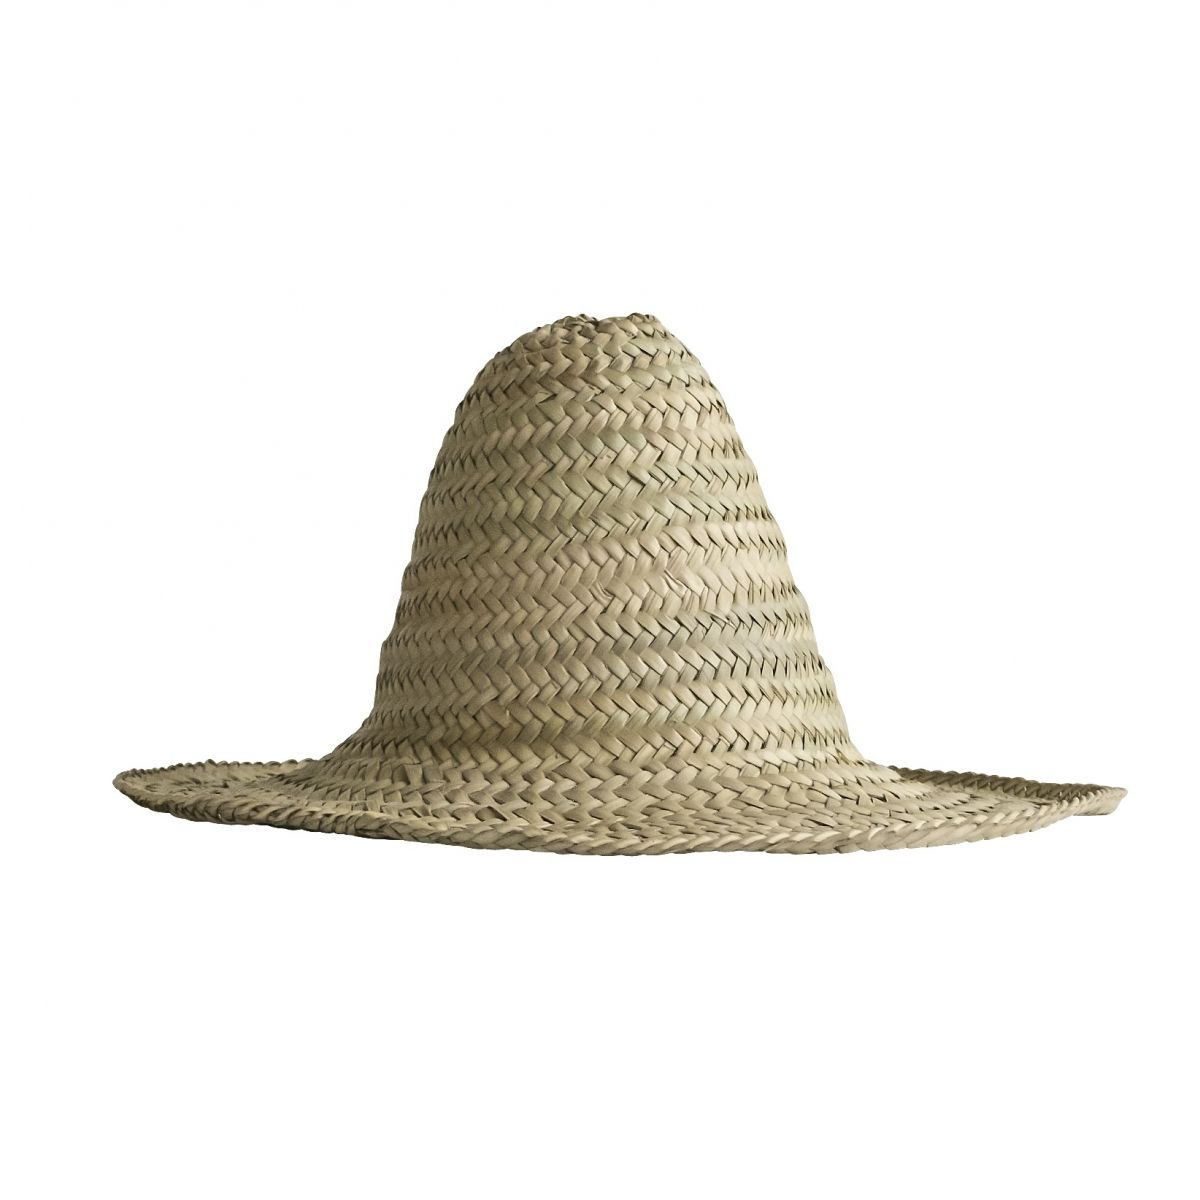 Tine K home Sunhat in straw